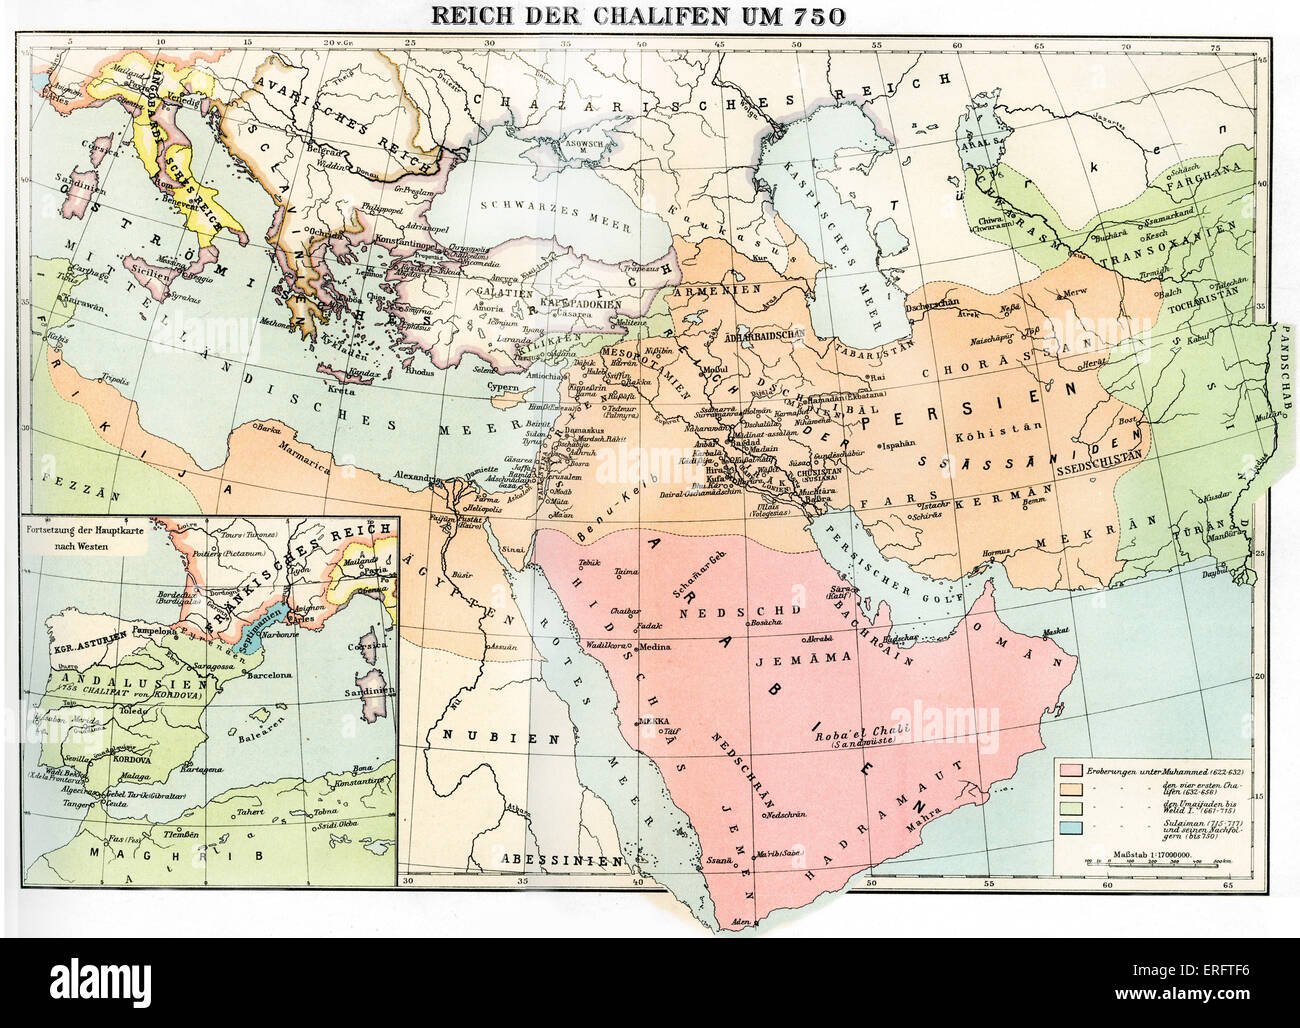 Empire of the Caliphate - map in 750. The Caliphs were the early leaders of the Muslim nation. Left hand square Stock Photo